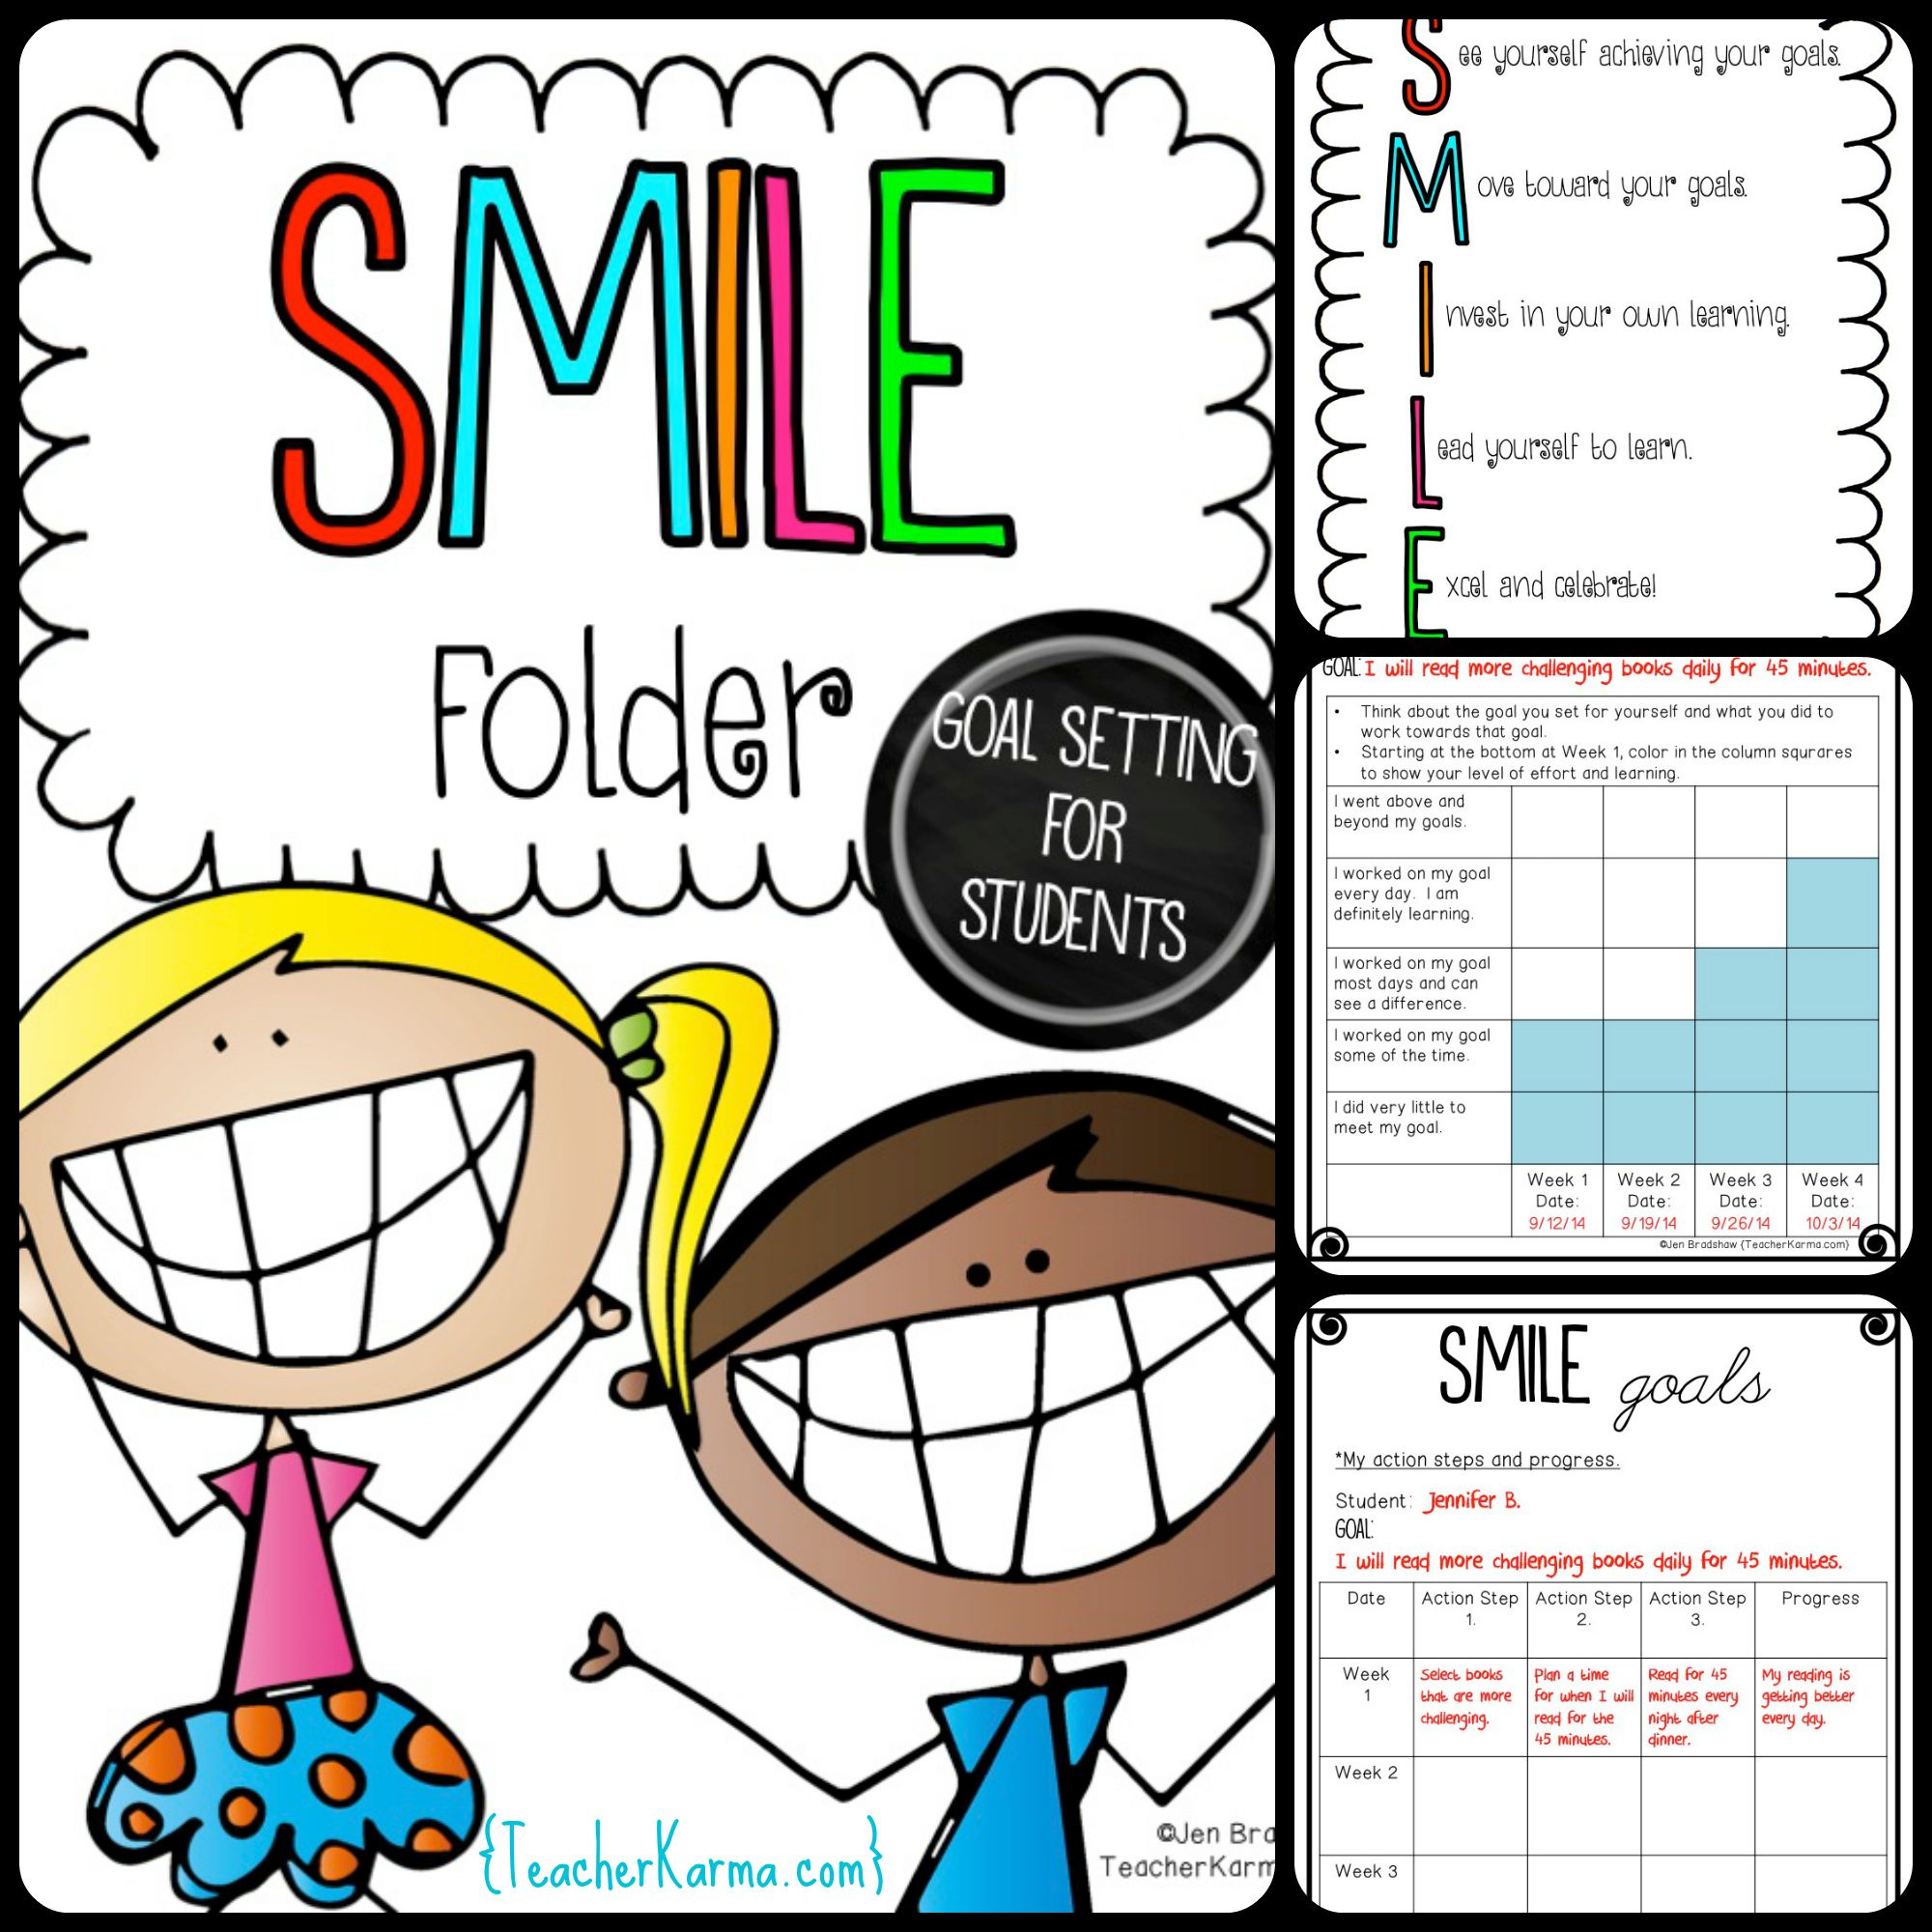 Setting Goals With Students Rti Smile Goals For Making Progress